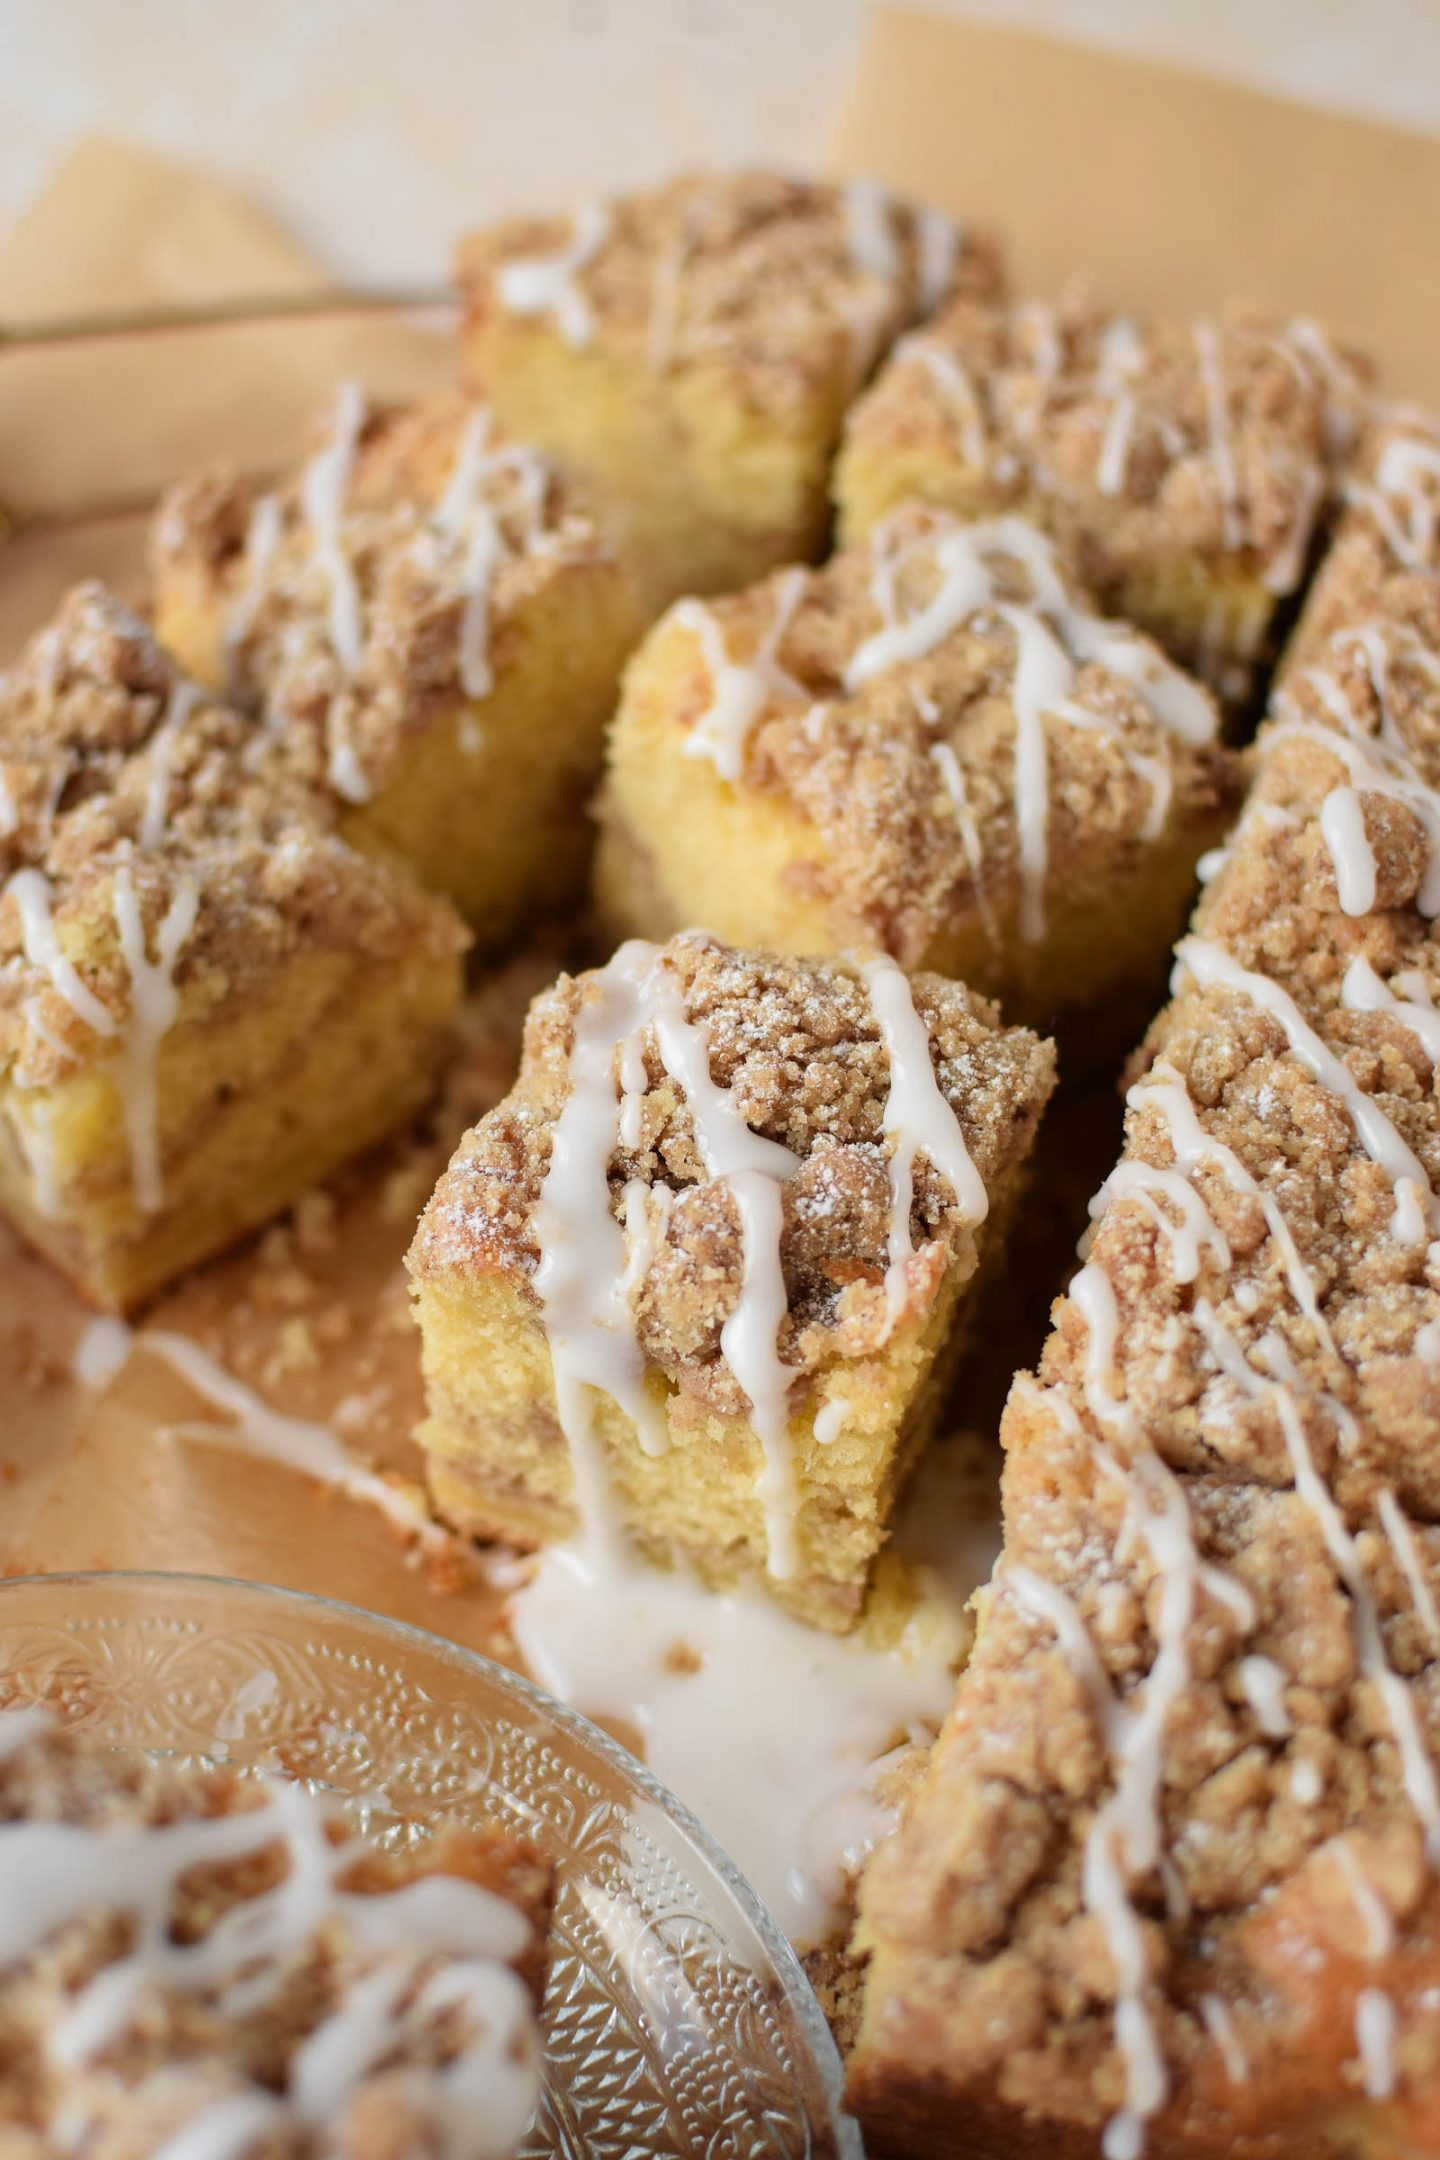 New York Crumb Cake with a vanilla frosting drizzled on the top.